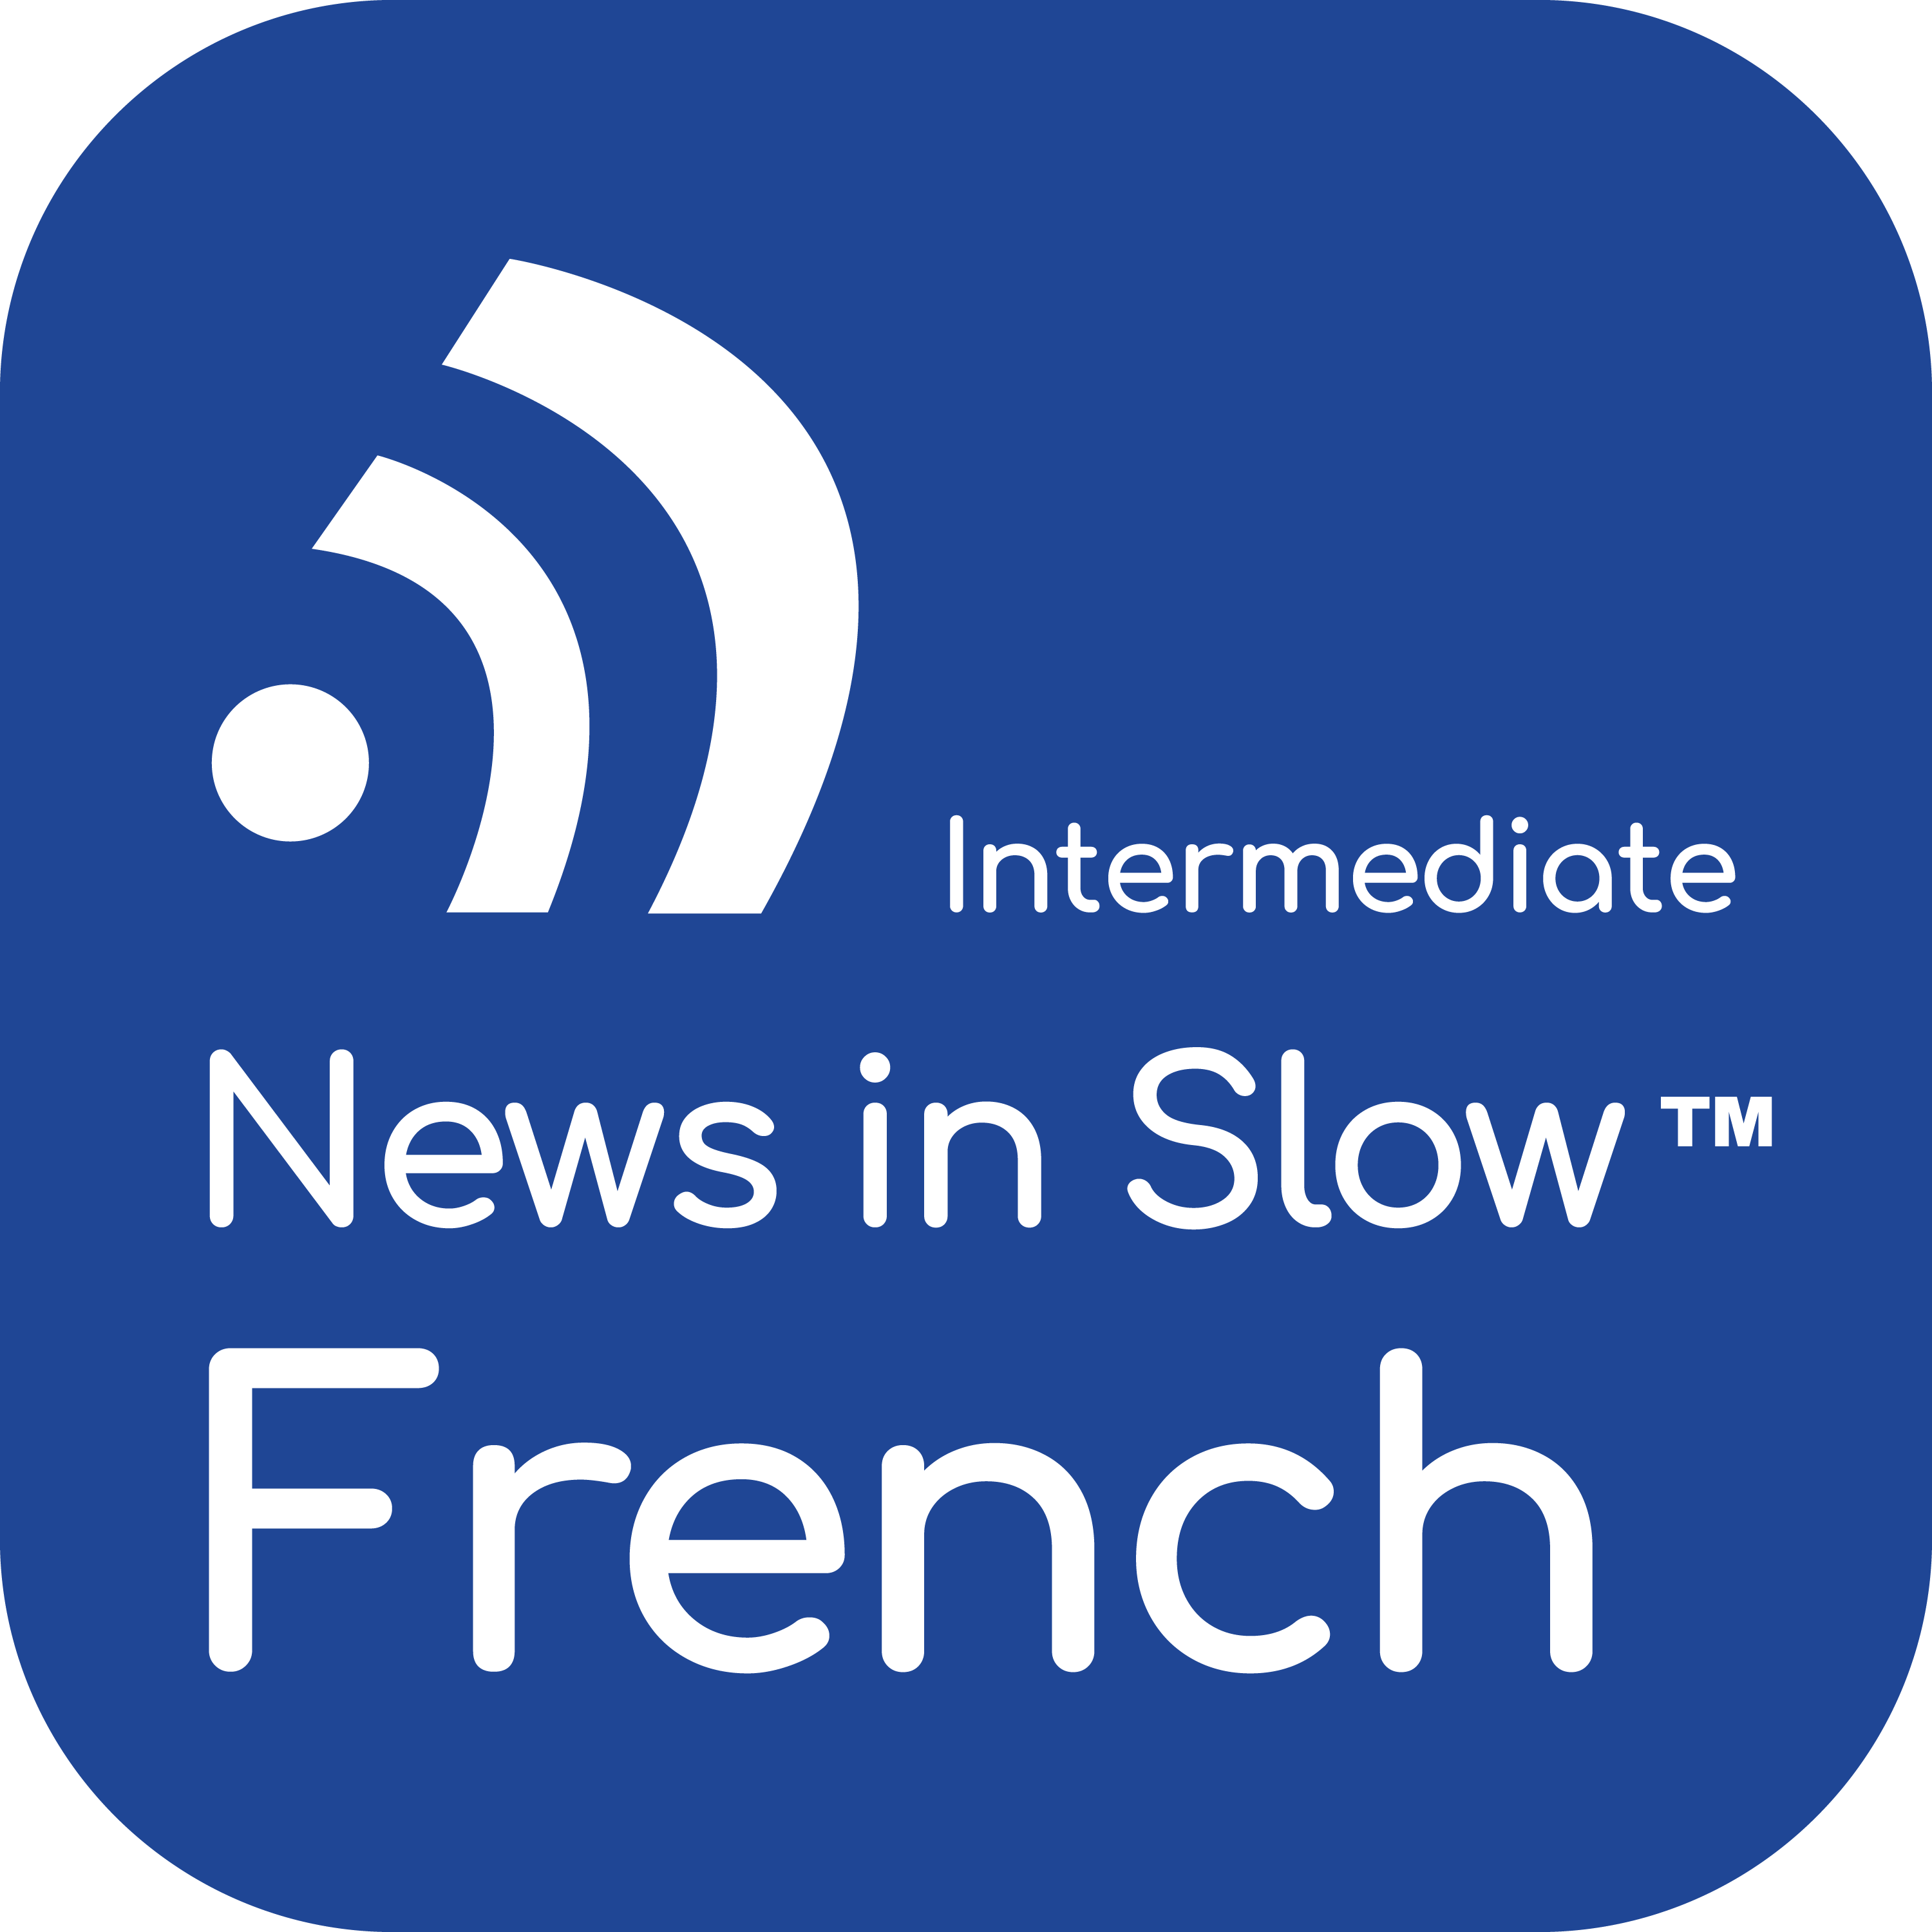 News in Slow French #496 - Best French Program for Intermediate Learners